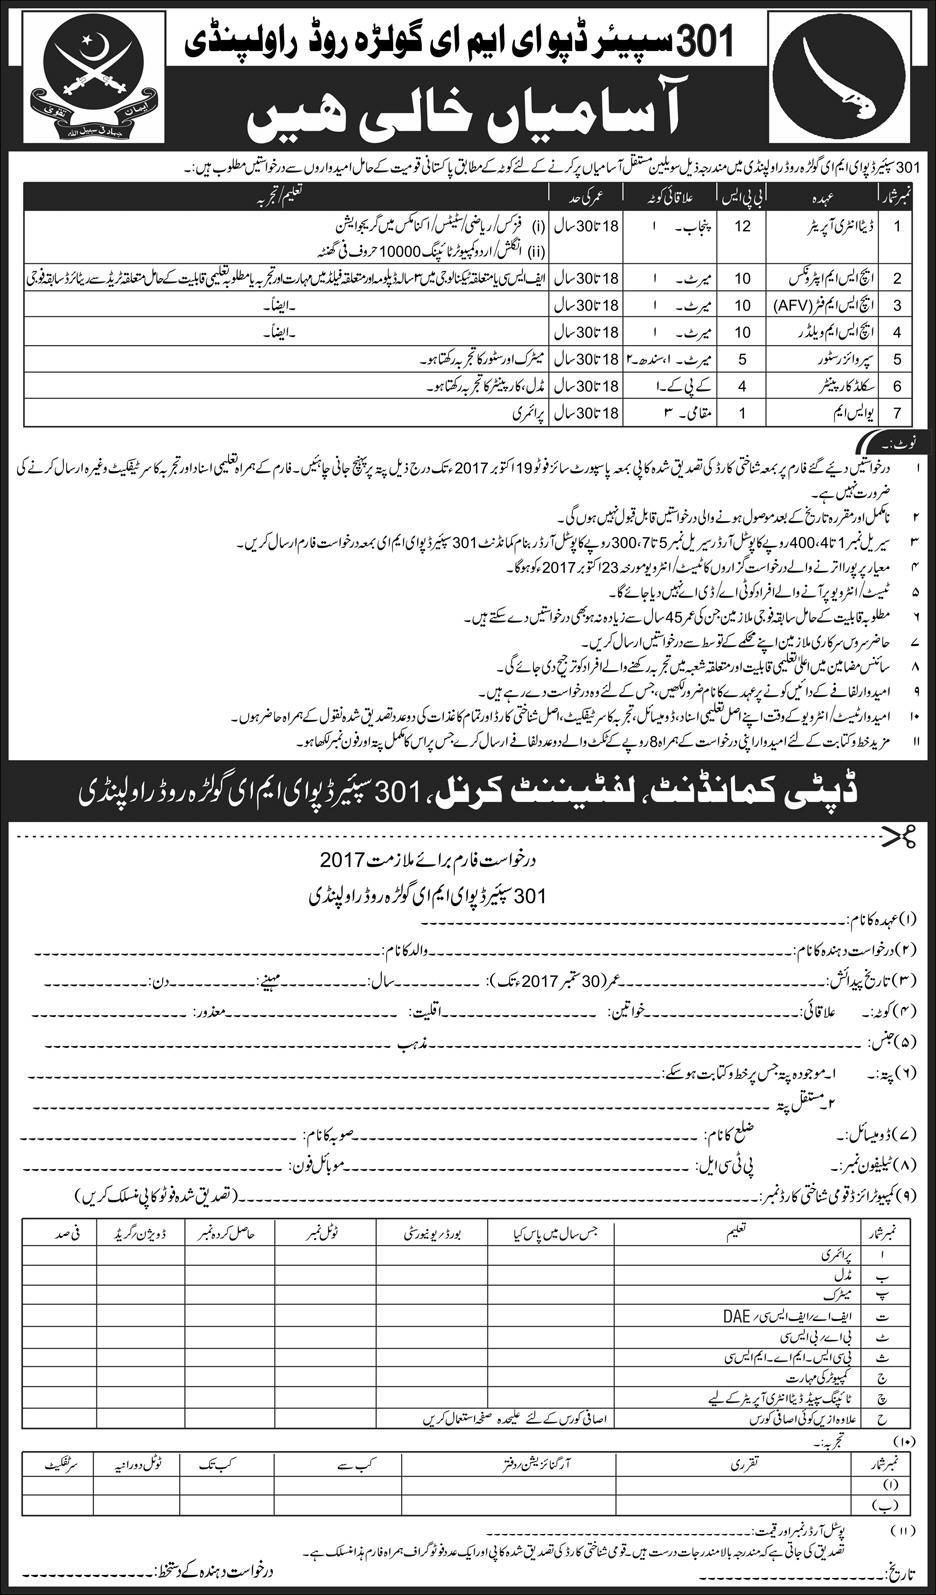 Jobs in 301 spares depot eme Golra Road rawalpindi Oct 2017